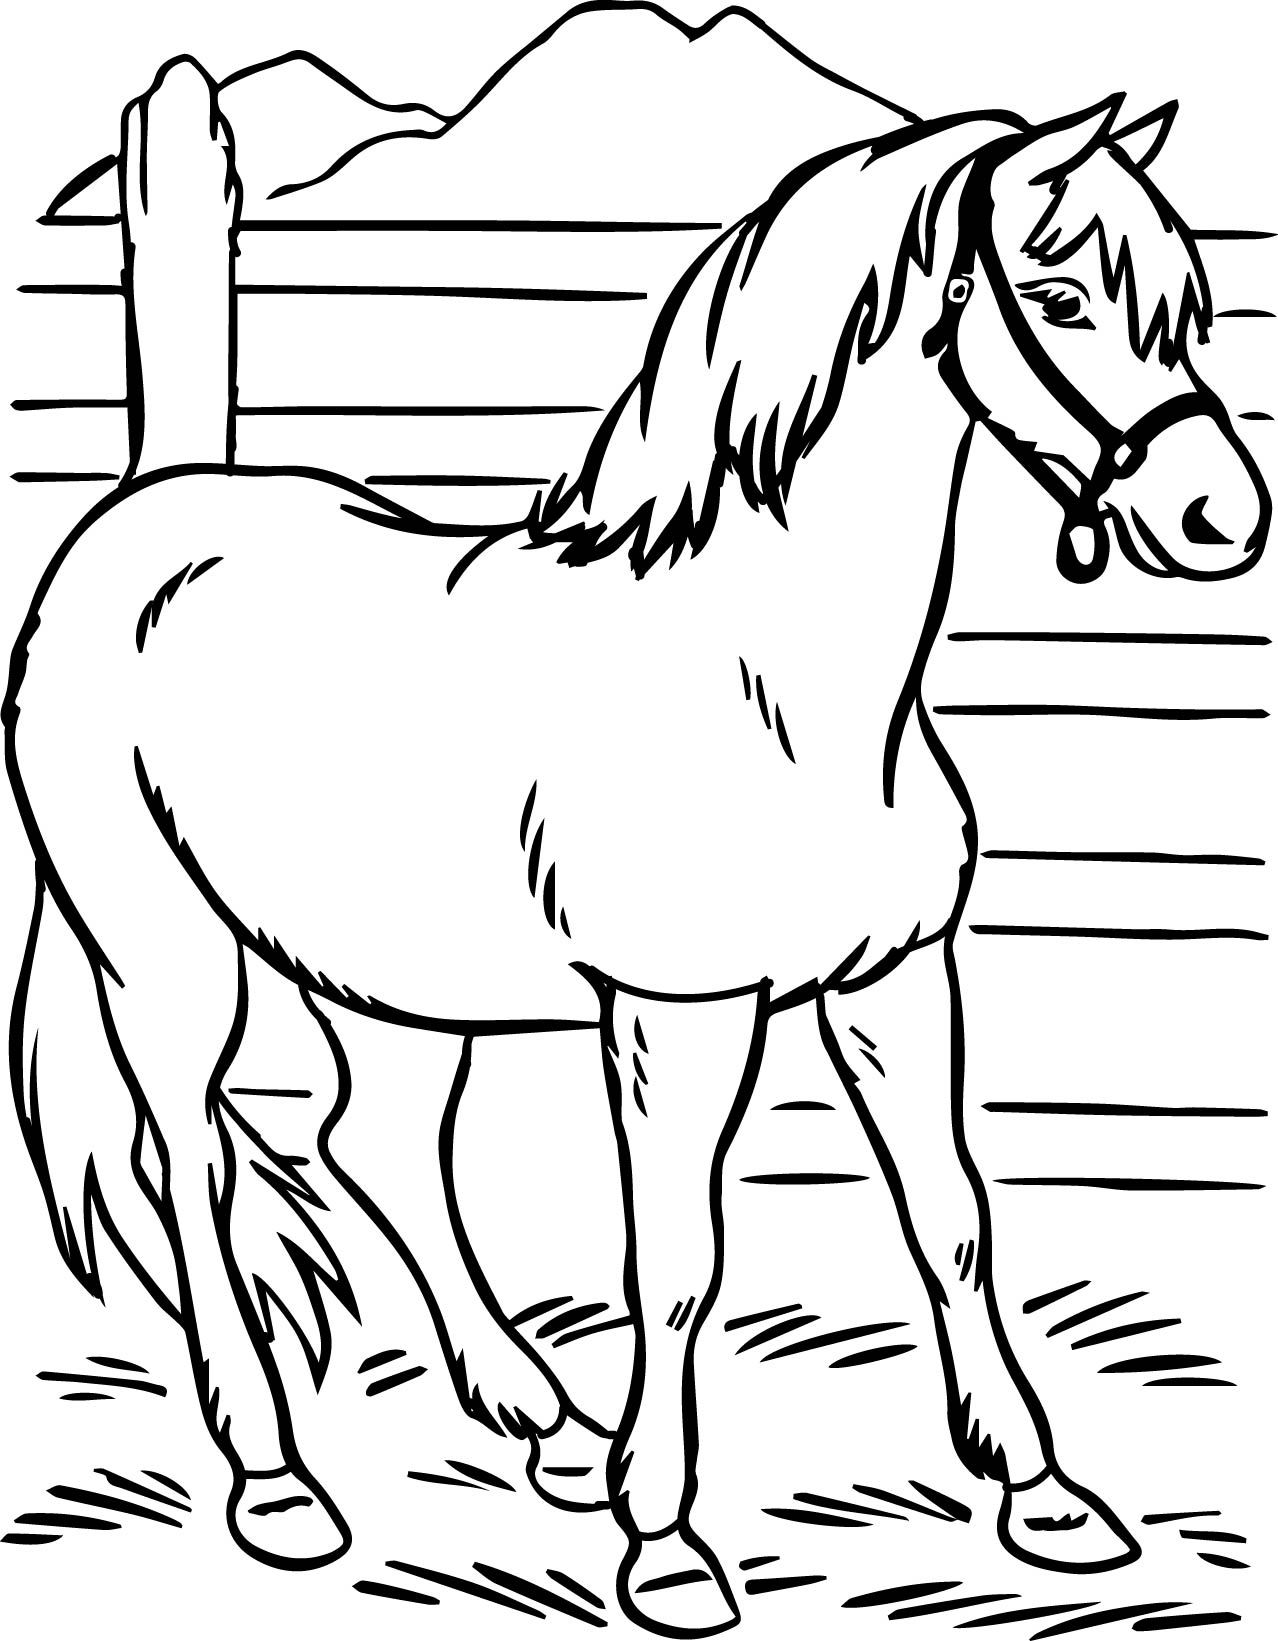 Horse Coloring Pages Preschool And Kindergarten Horse Coloring Pages Horse Coloring Books Animal Coloring Pages [ 1641 x 1278 Pixel ]